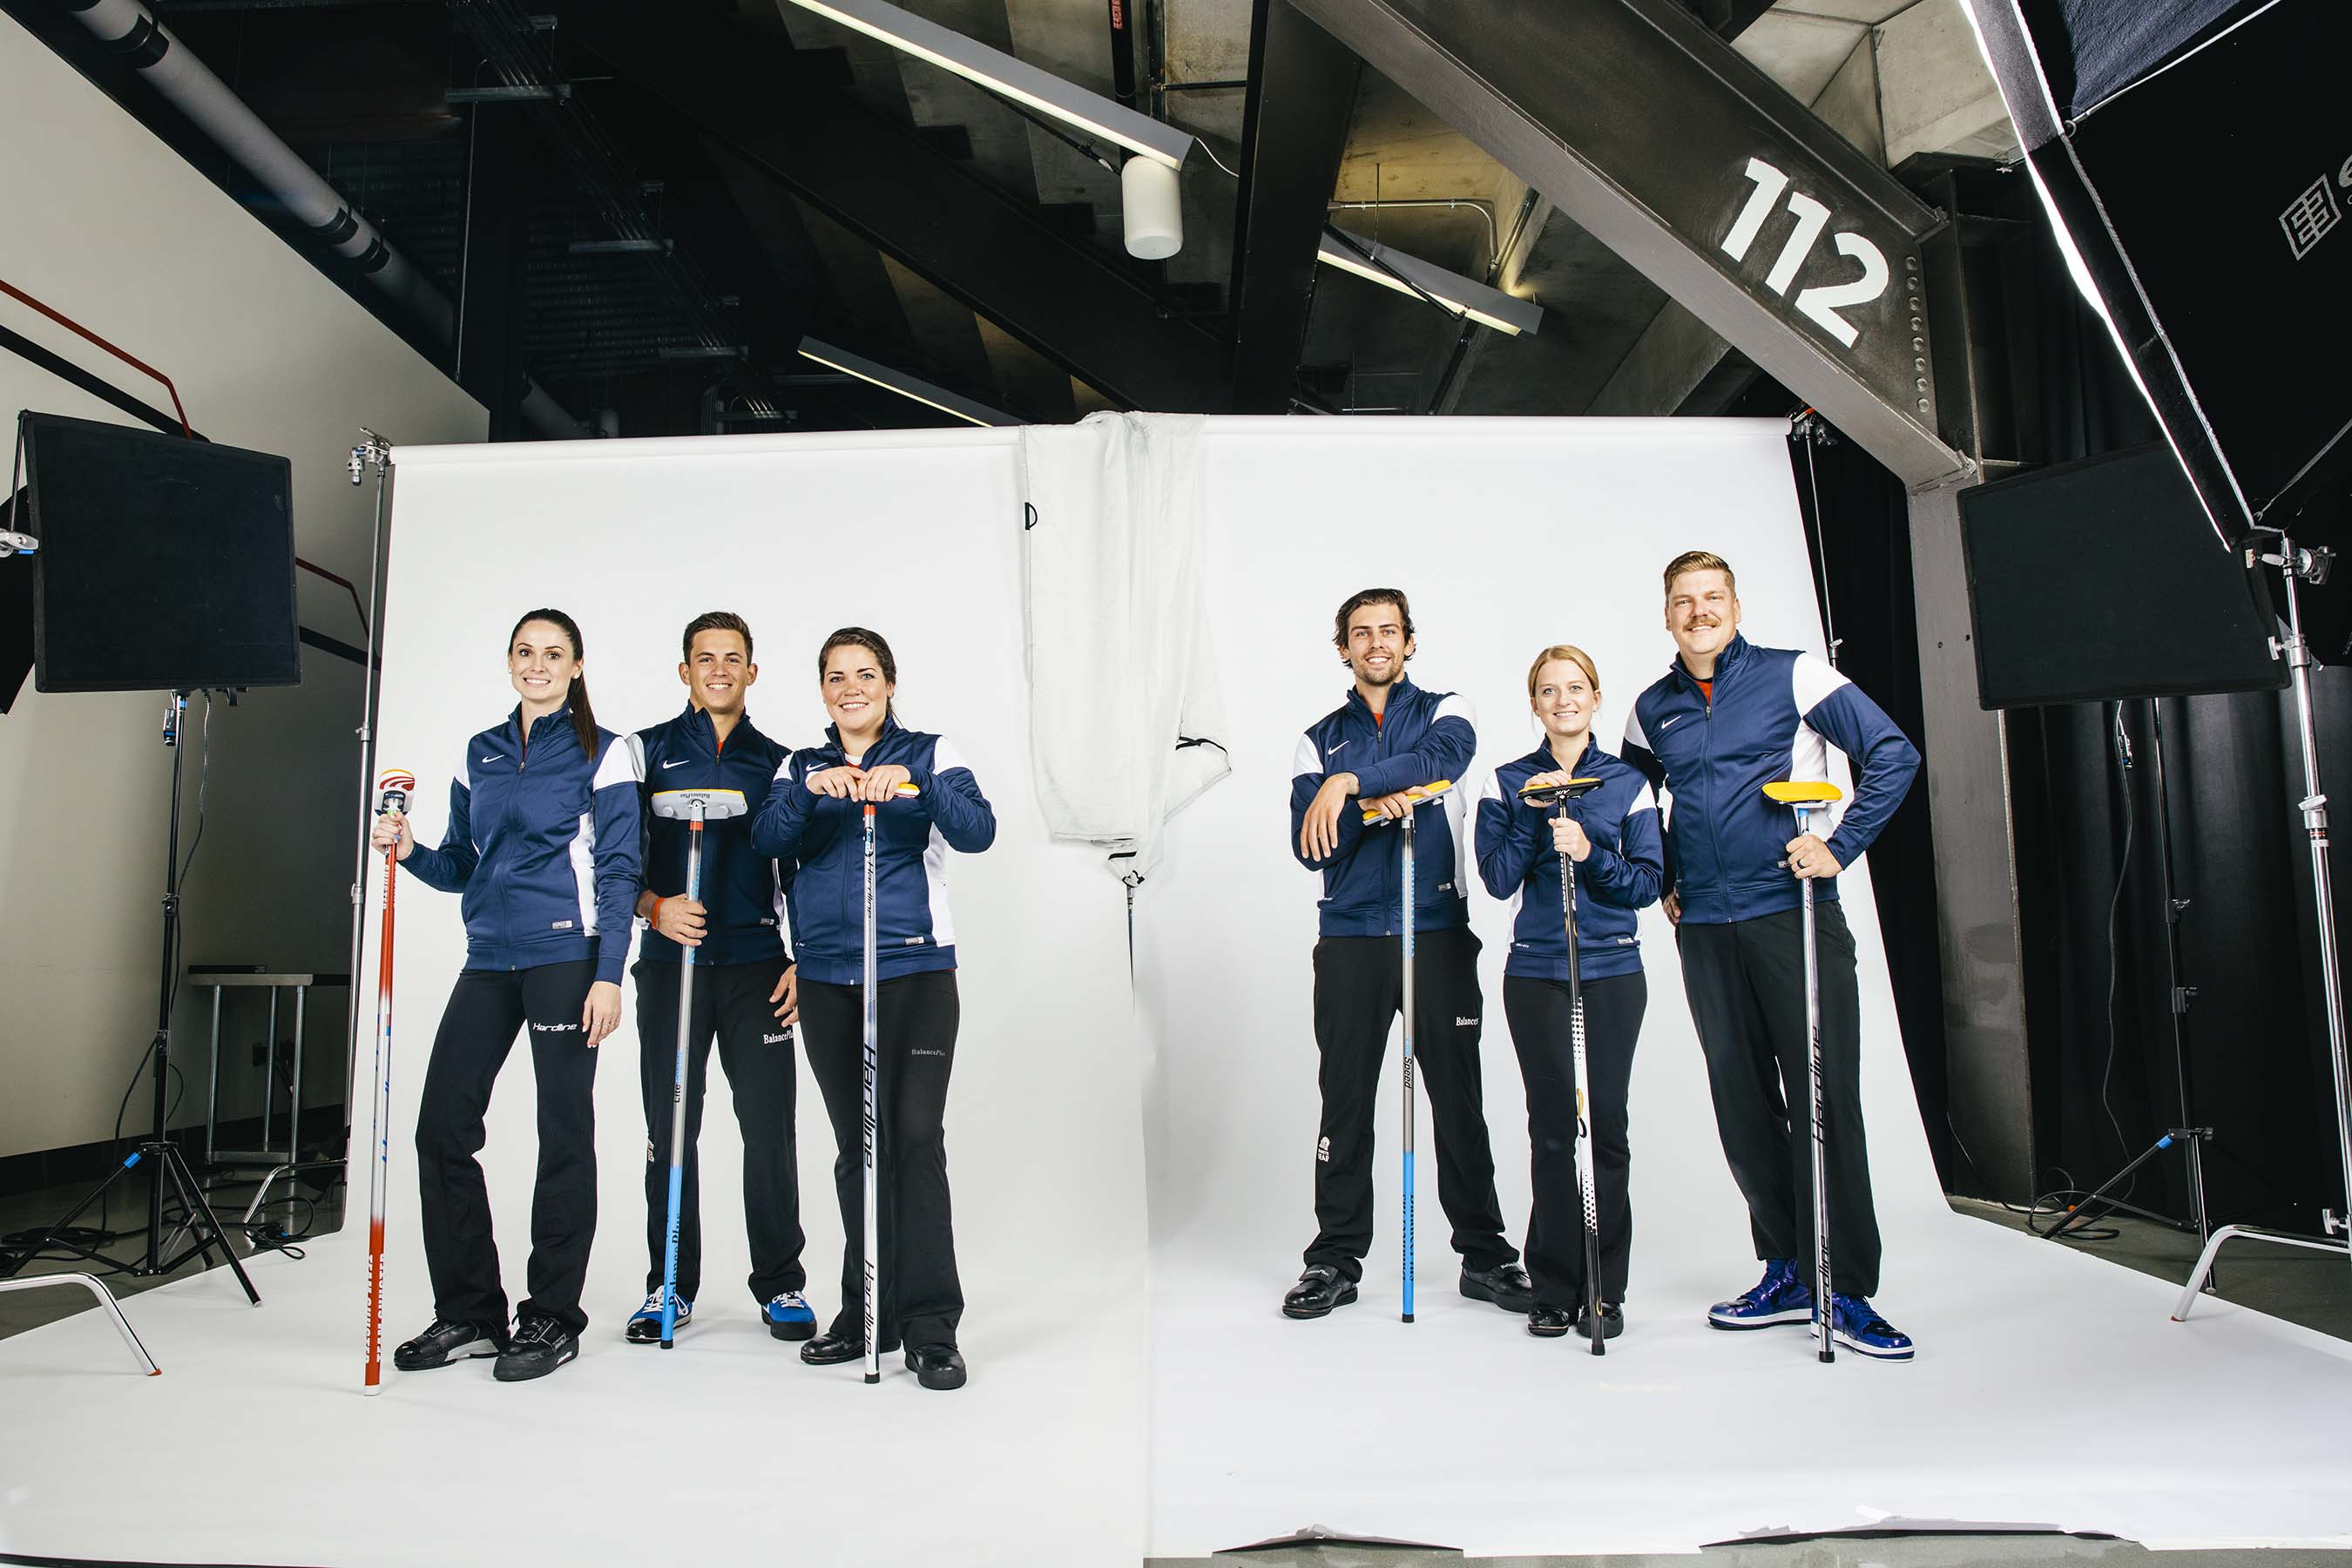 Members of the USA Curling team